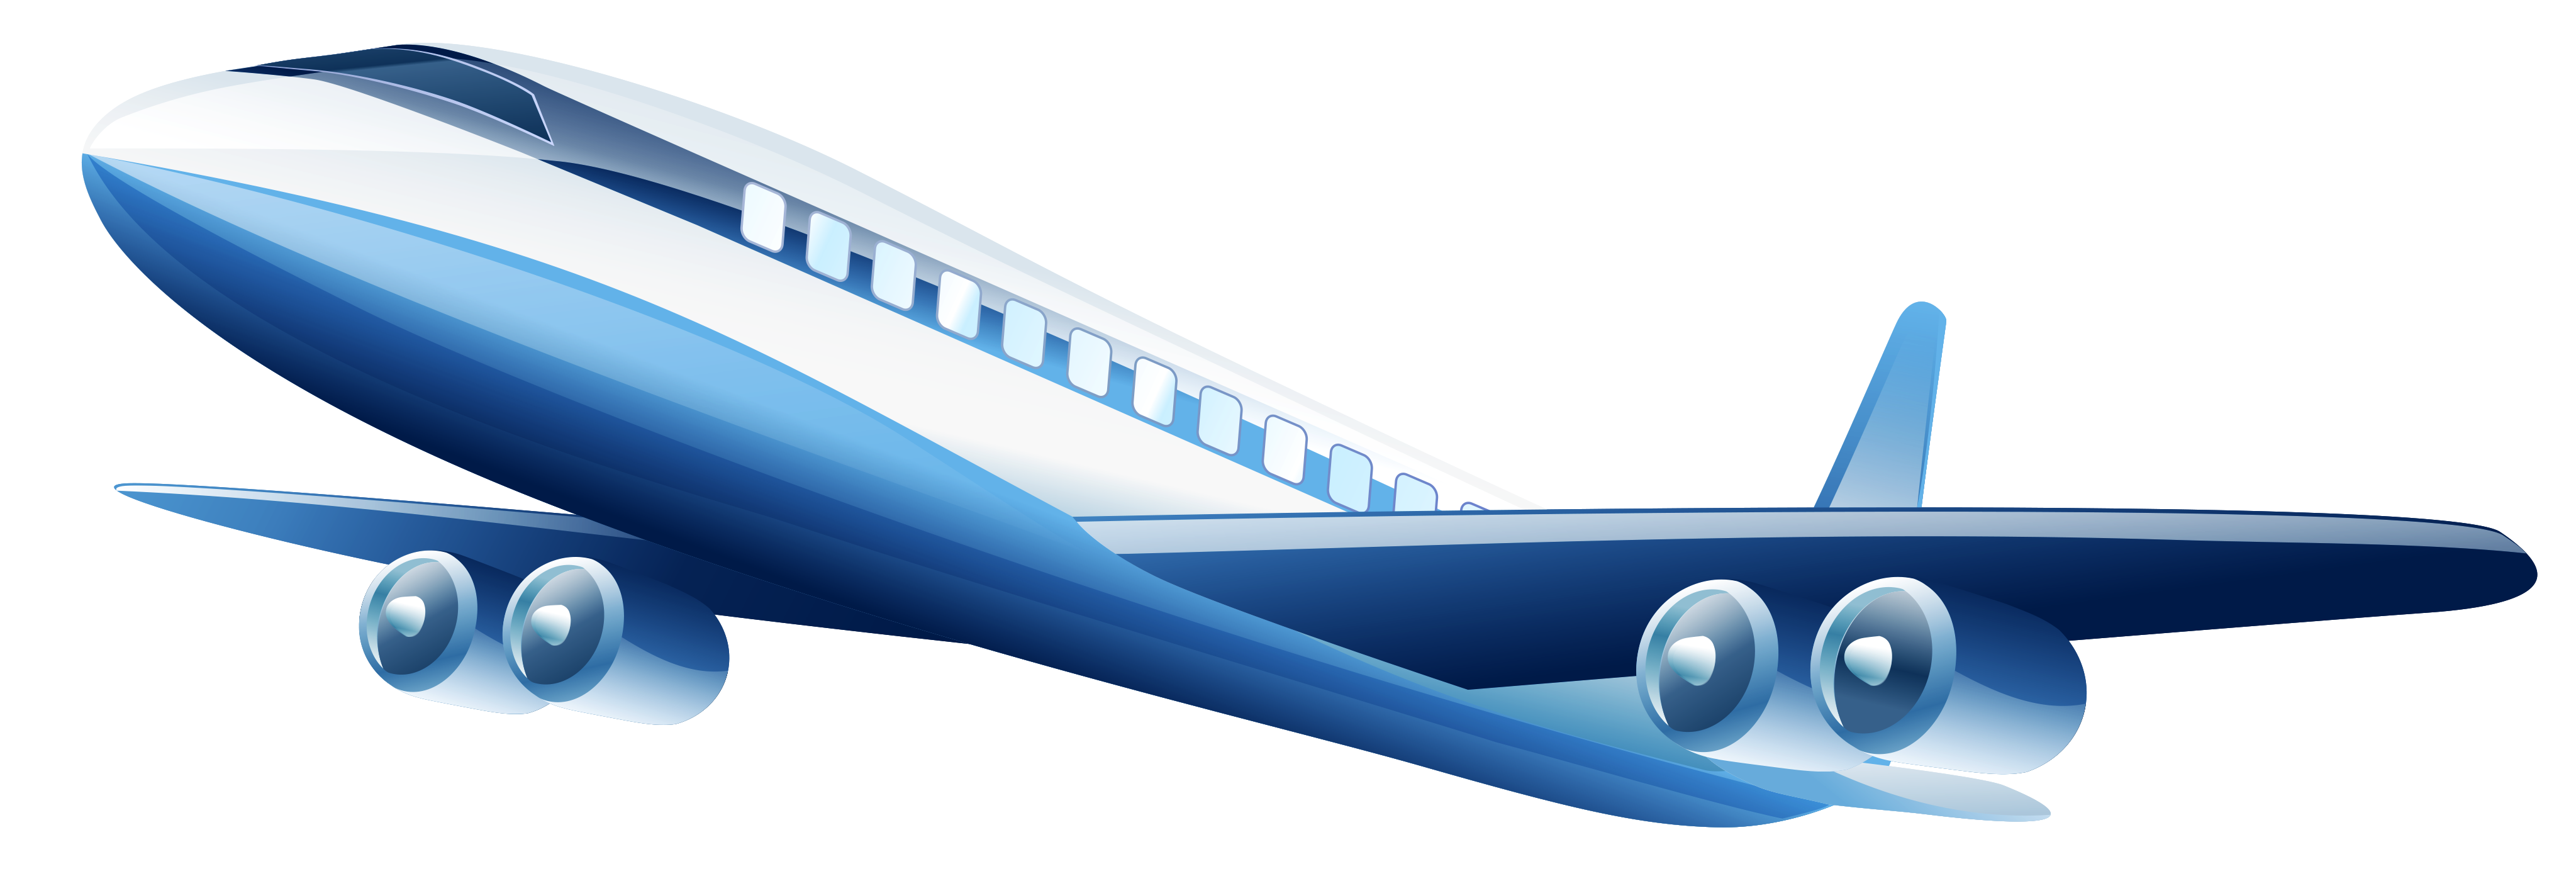 Blue airplane png best. Clipart car picnic